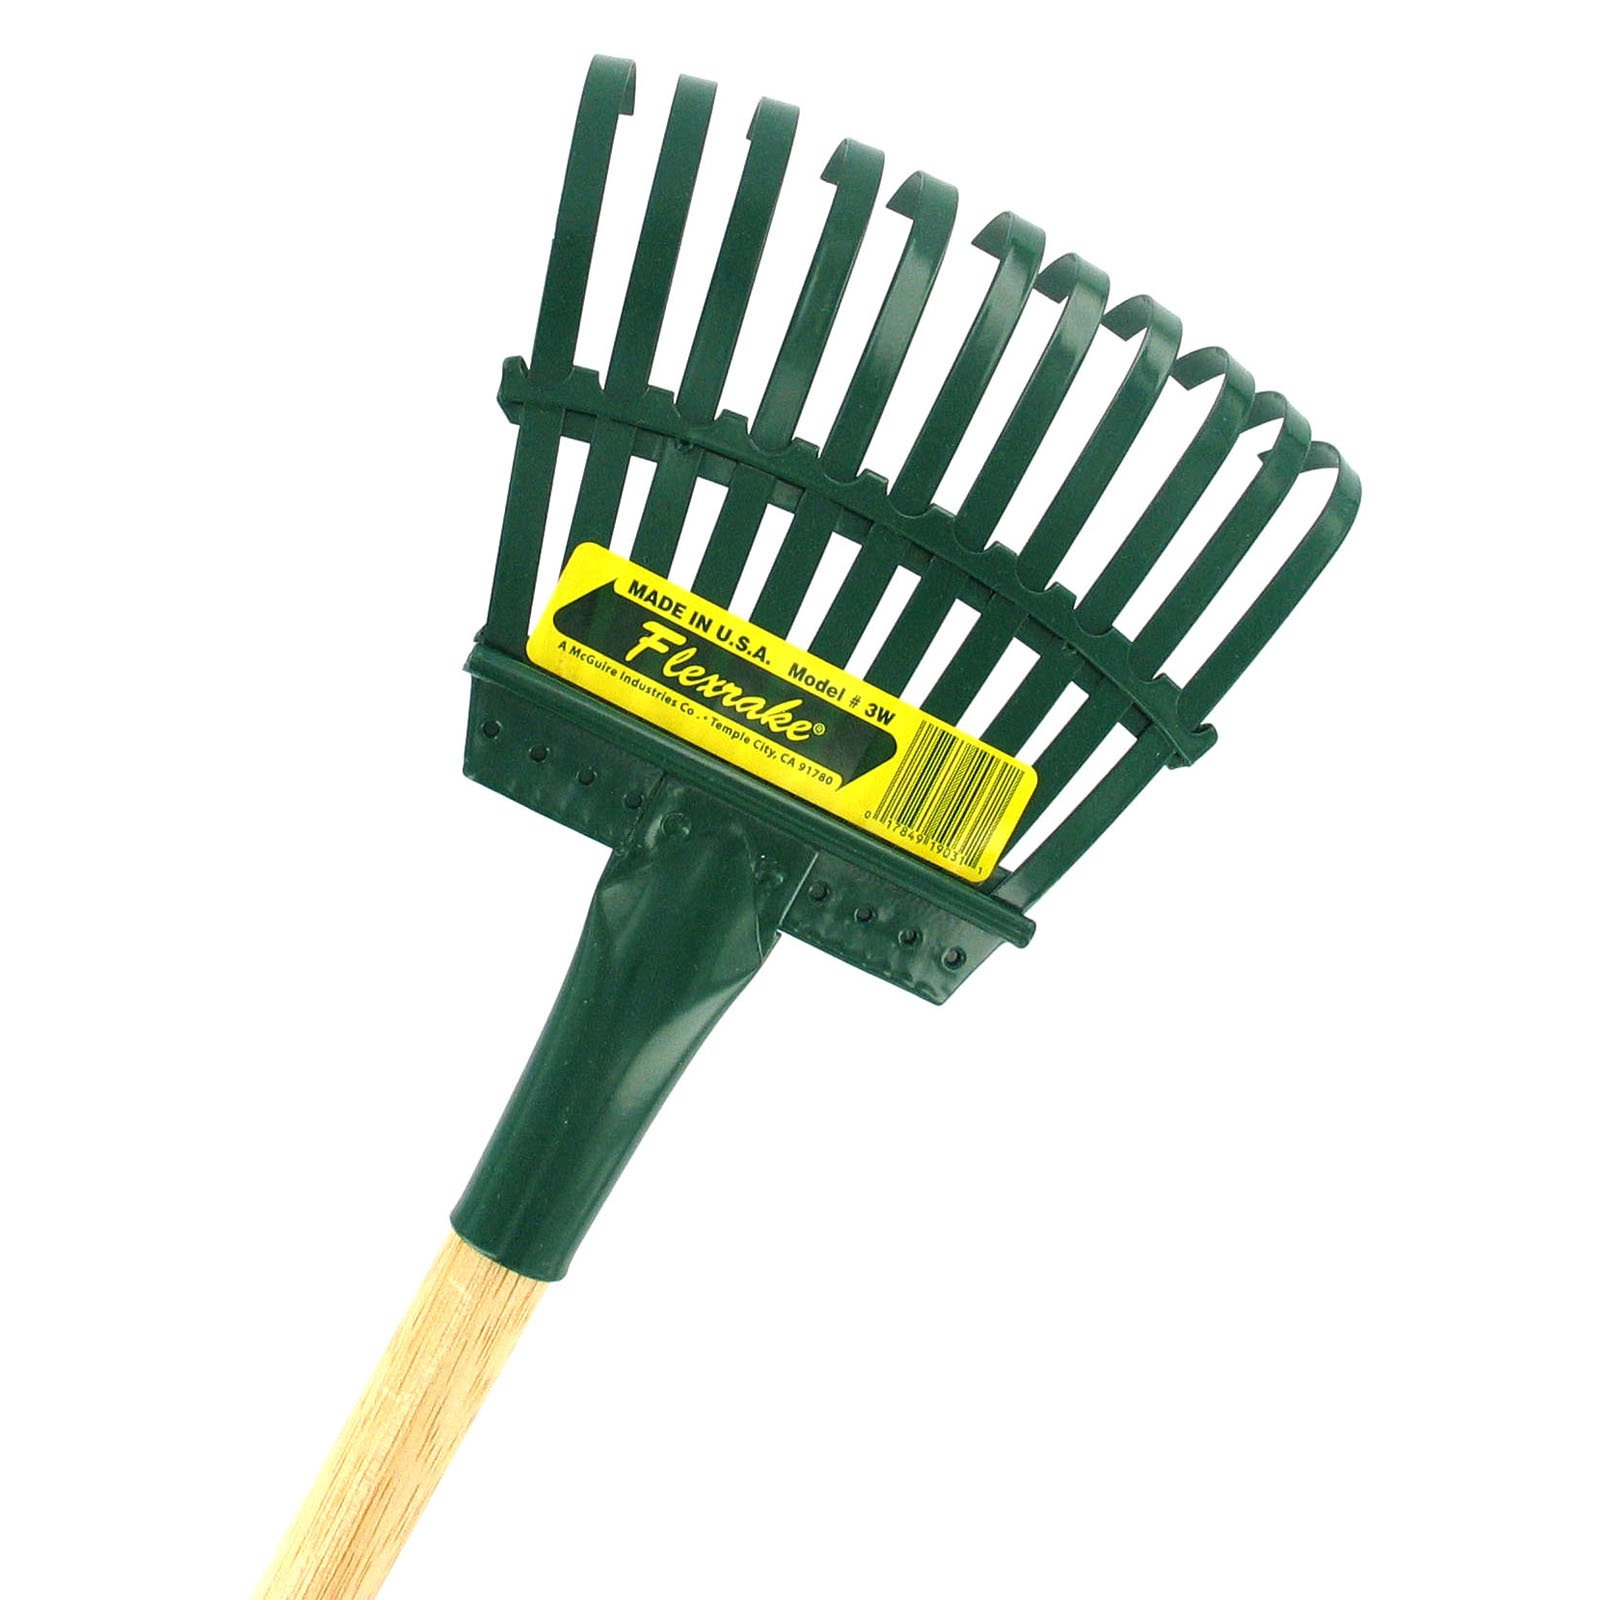 Flexrake 3W 48 in. Handle 8 in. Steel Head Shrub Rake